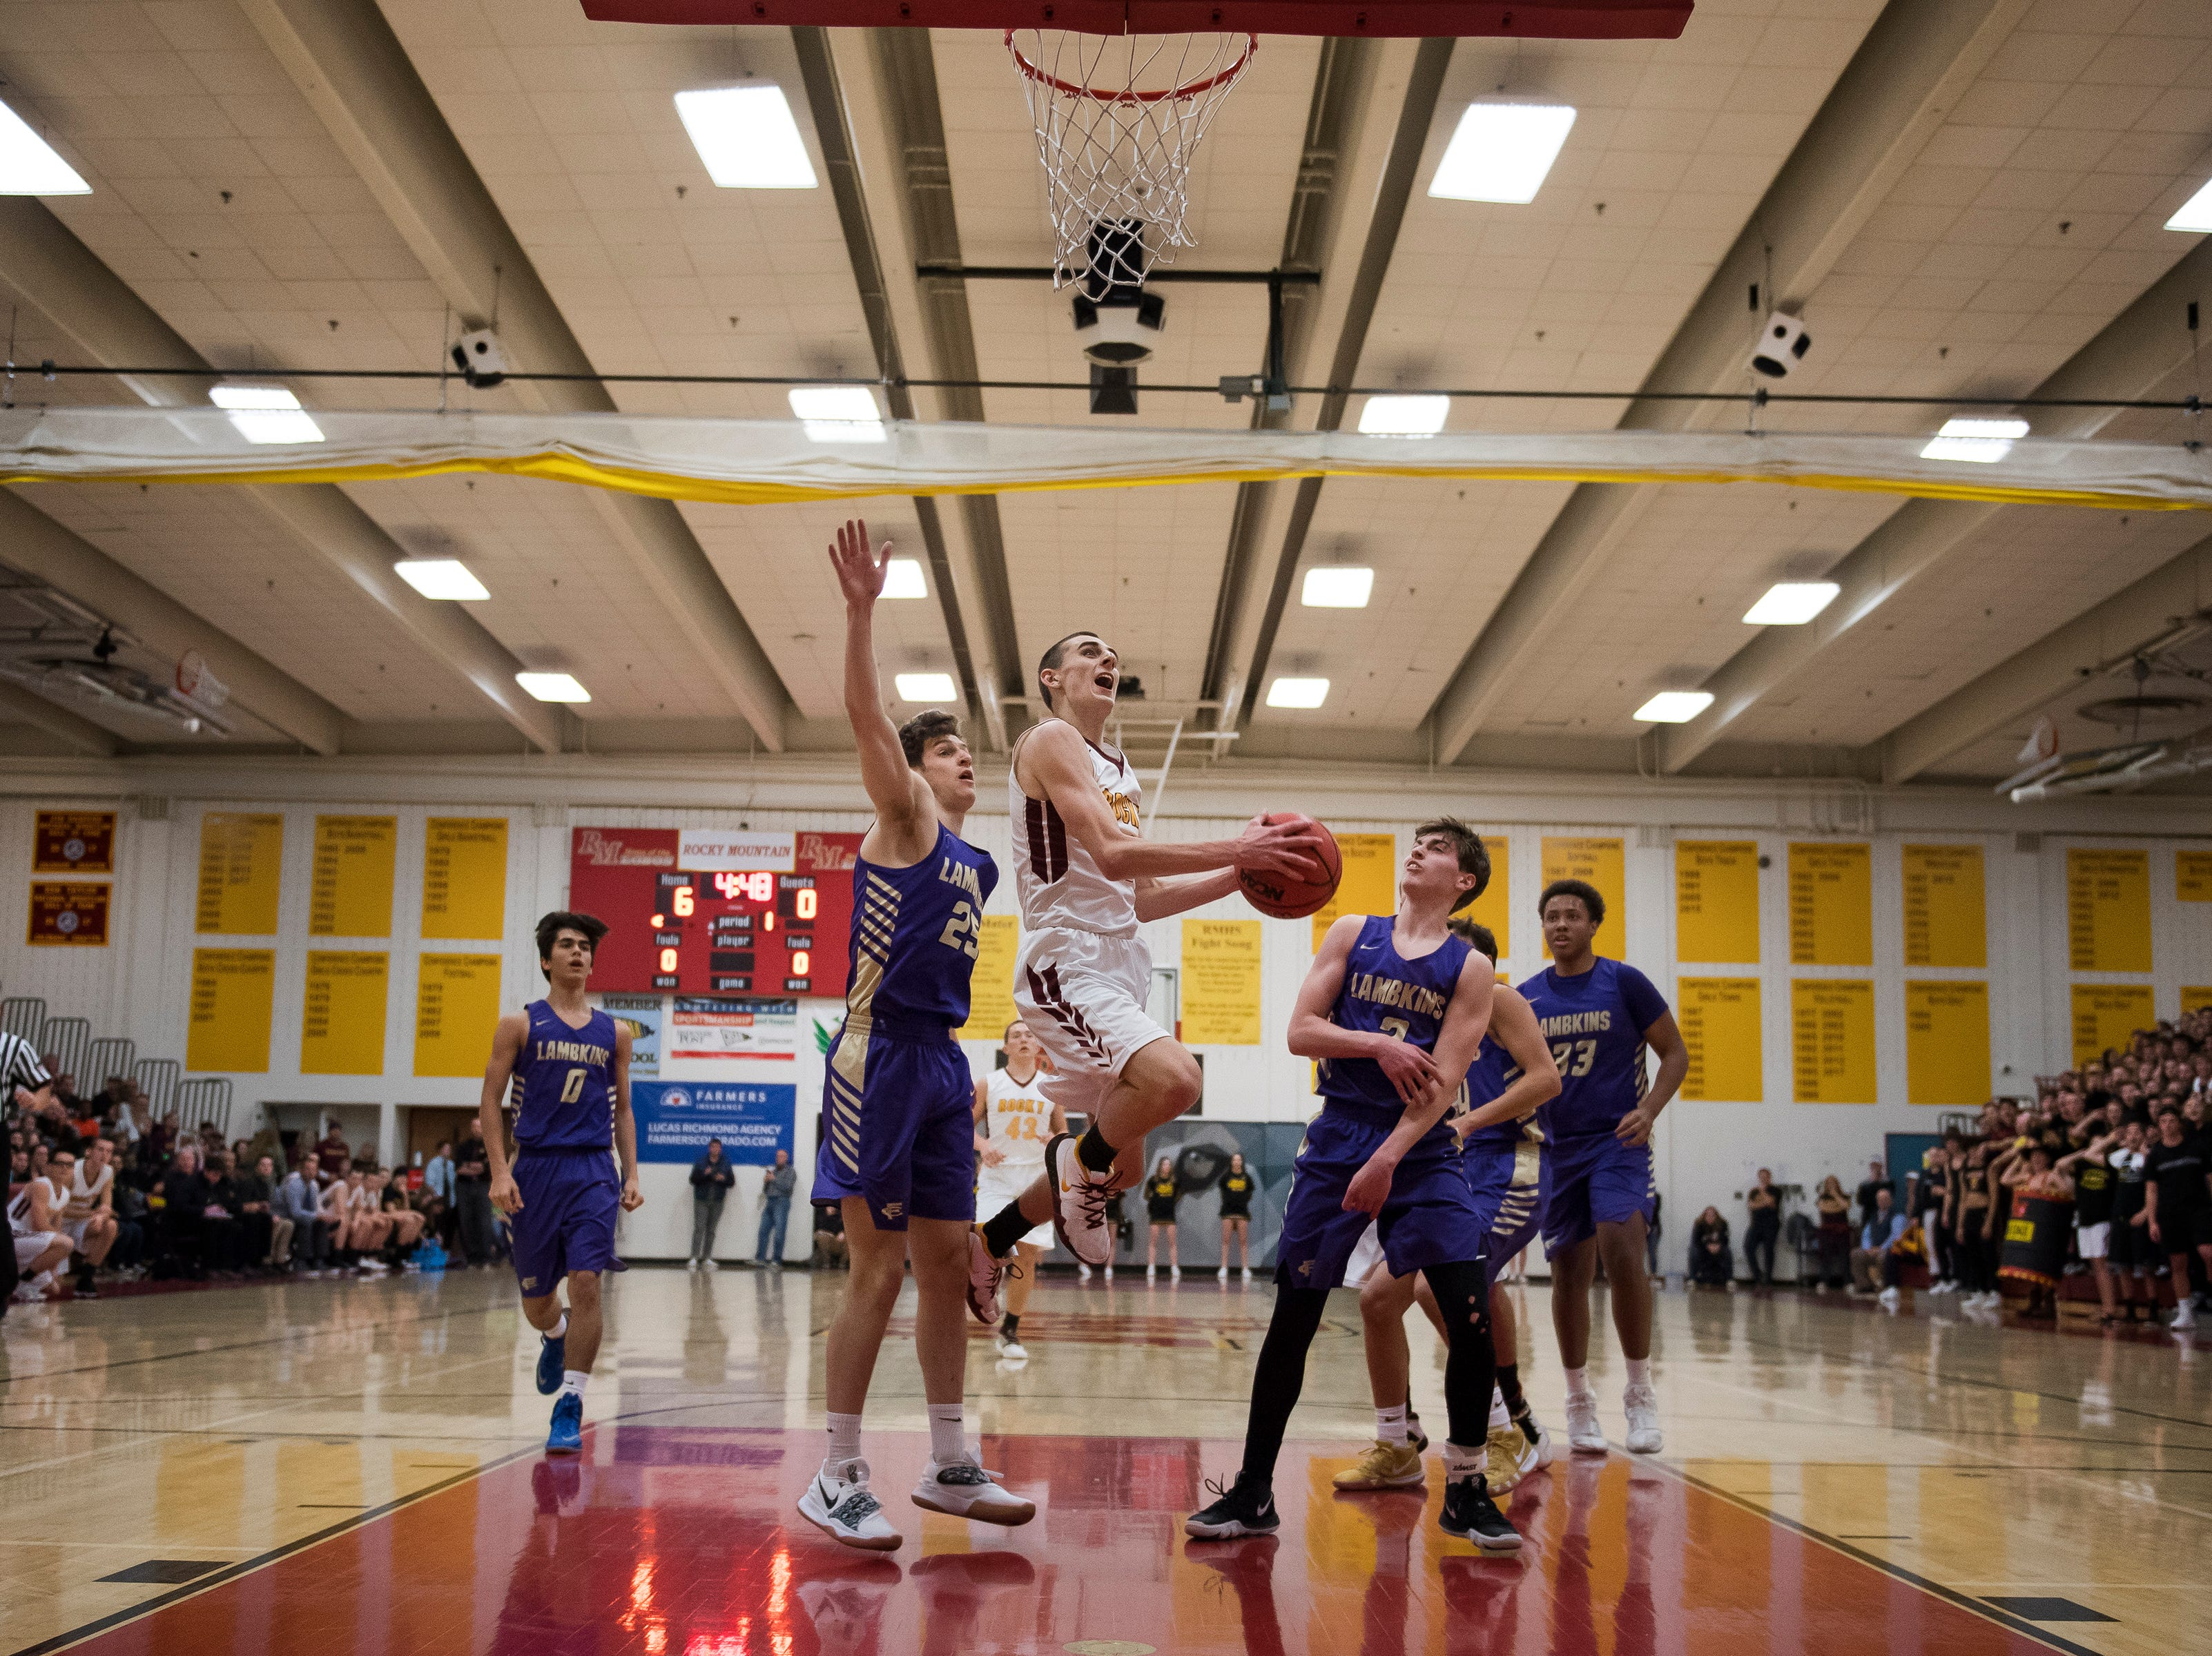 Rocky Mountain High School senior Tyler Fisher (4) puts a shot up during a game against Fort Collins High School on Friday, Jan. 18, 2019, at Rocky Mountain High School in Fort Collins, Colo.